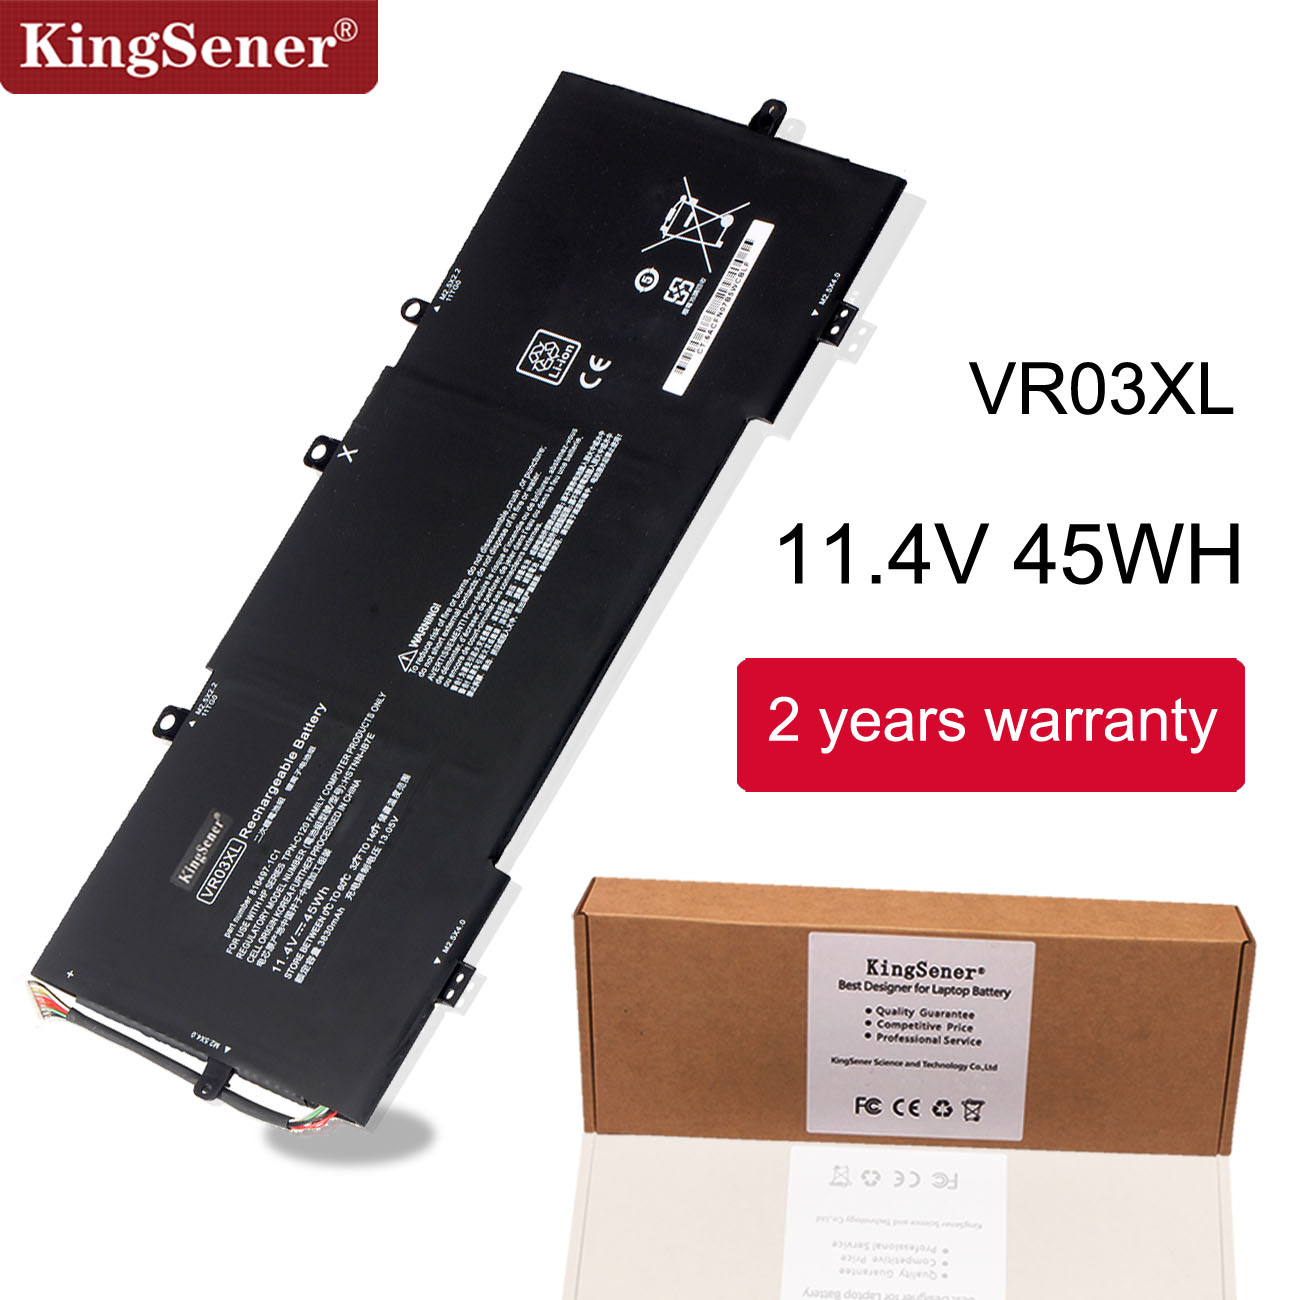 Kingsener VR03XL HSTNN-IB7E Battery For HP Pavilion 13-D Envy 13 13-D 13-d096UR 13-d036NZ 13-D046TU 13-D051TU 13-D006TU TPN-C120